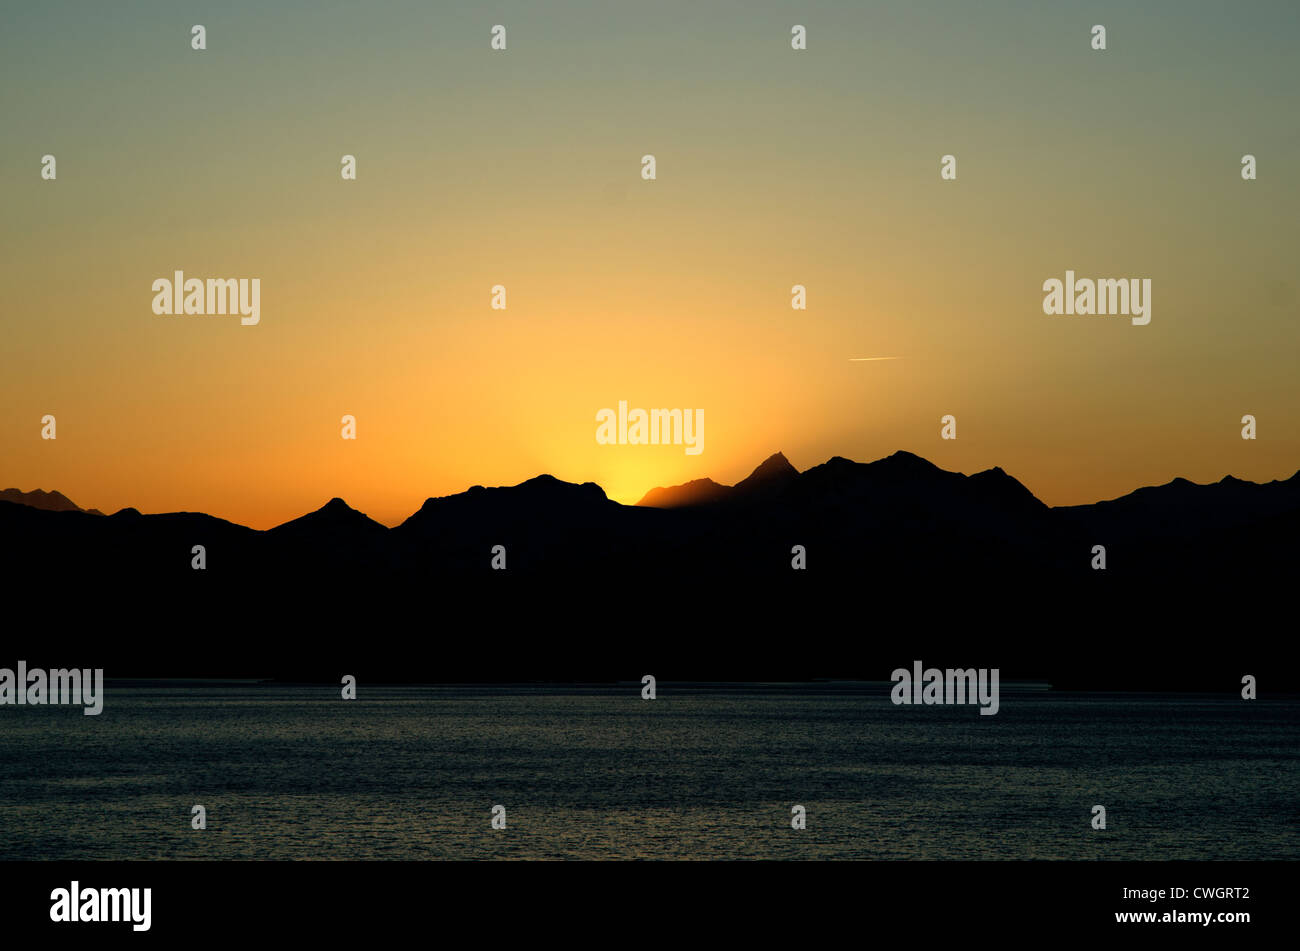 Sun sets Behind the Chugach Mountains in Alaska, USA - Stock Image